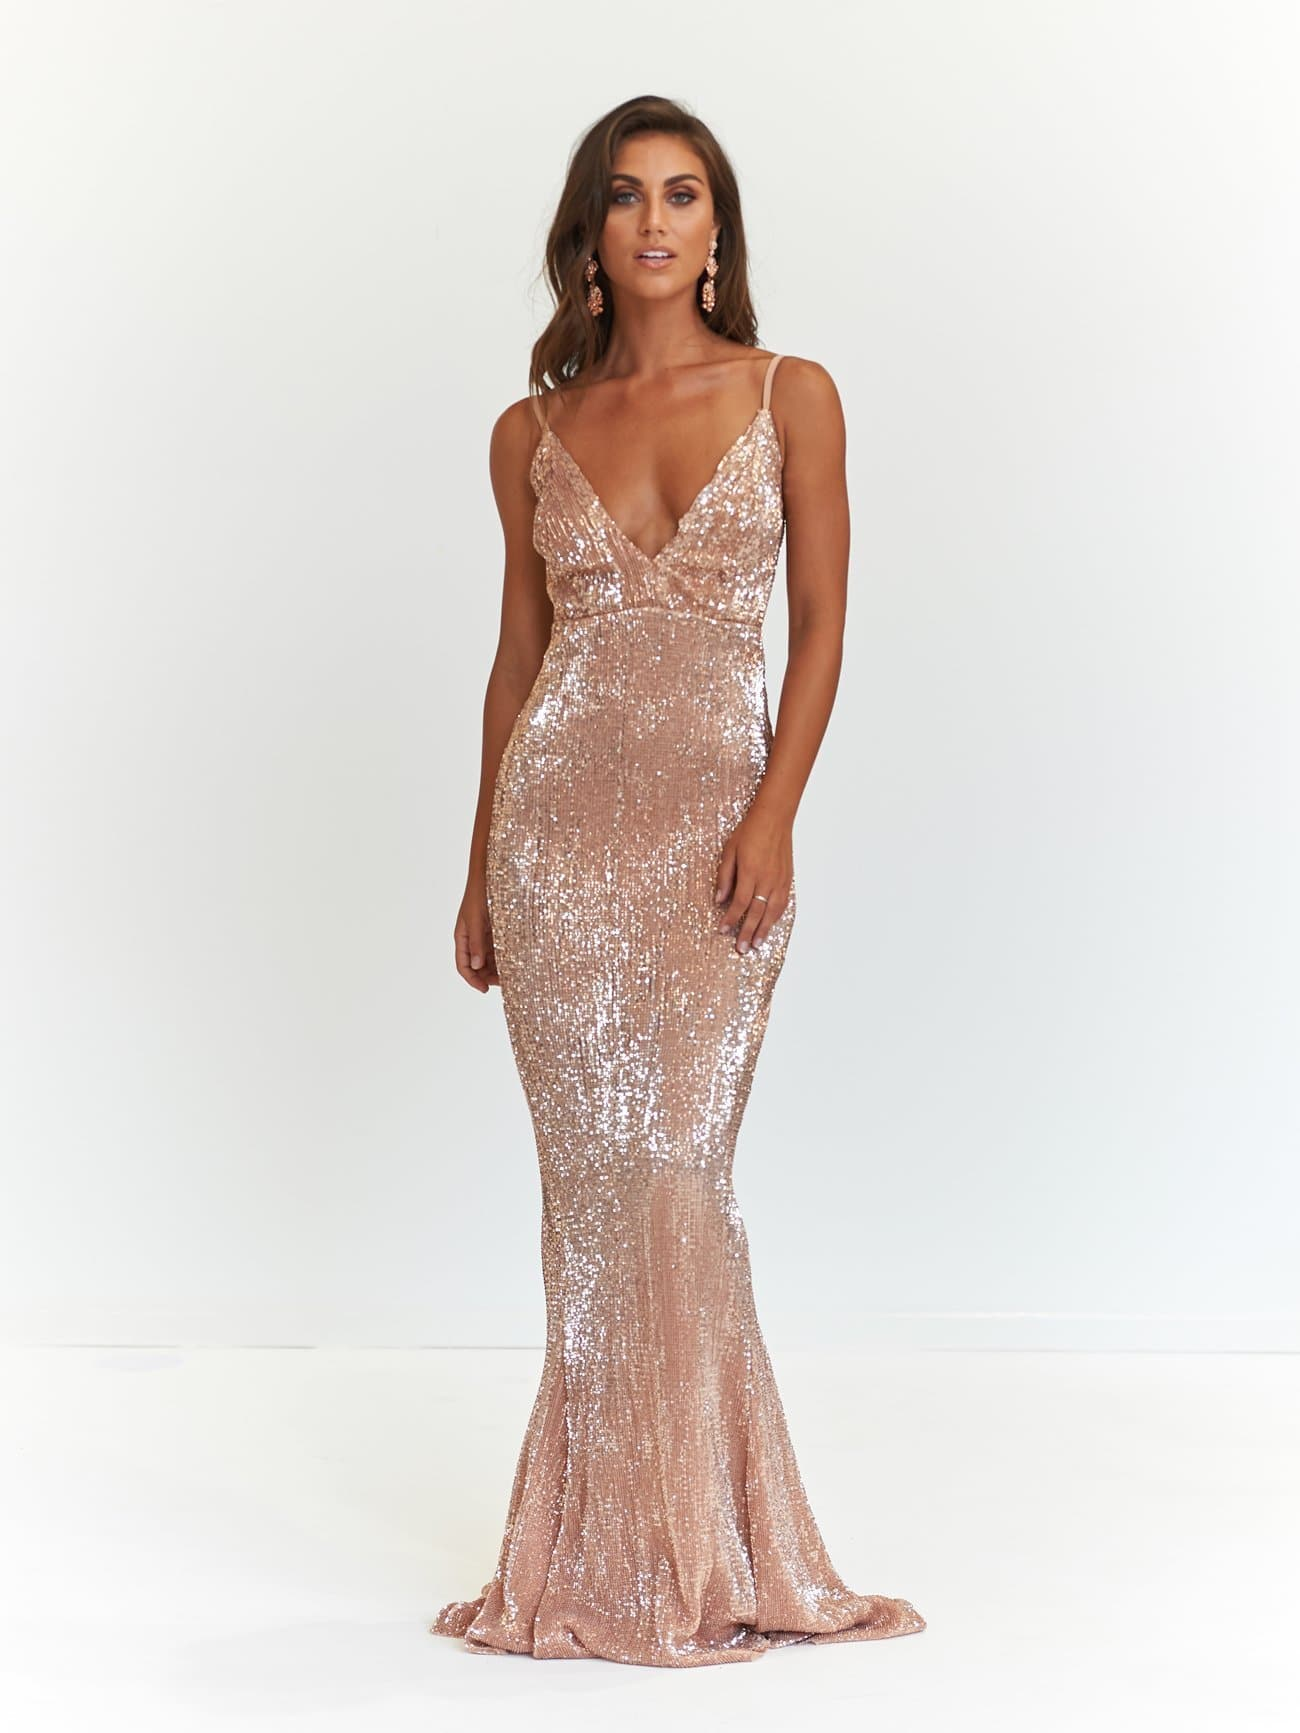 77f9bf9b77e8 A&N Cynthia- Rose Gold Sparkling Dress with V Neck and Low Back ...